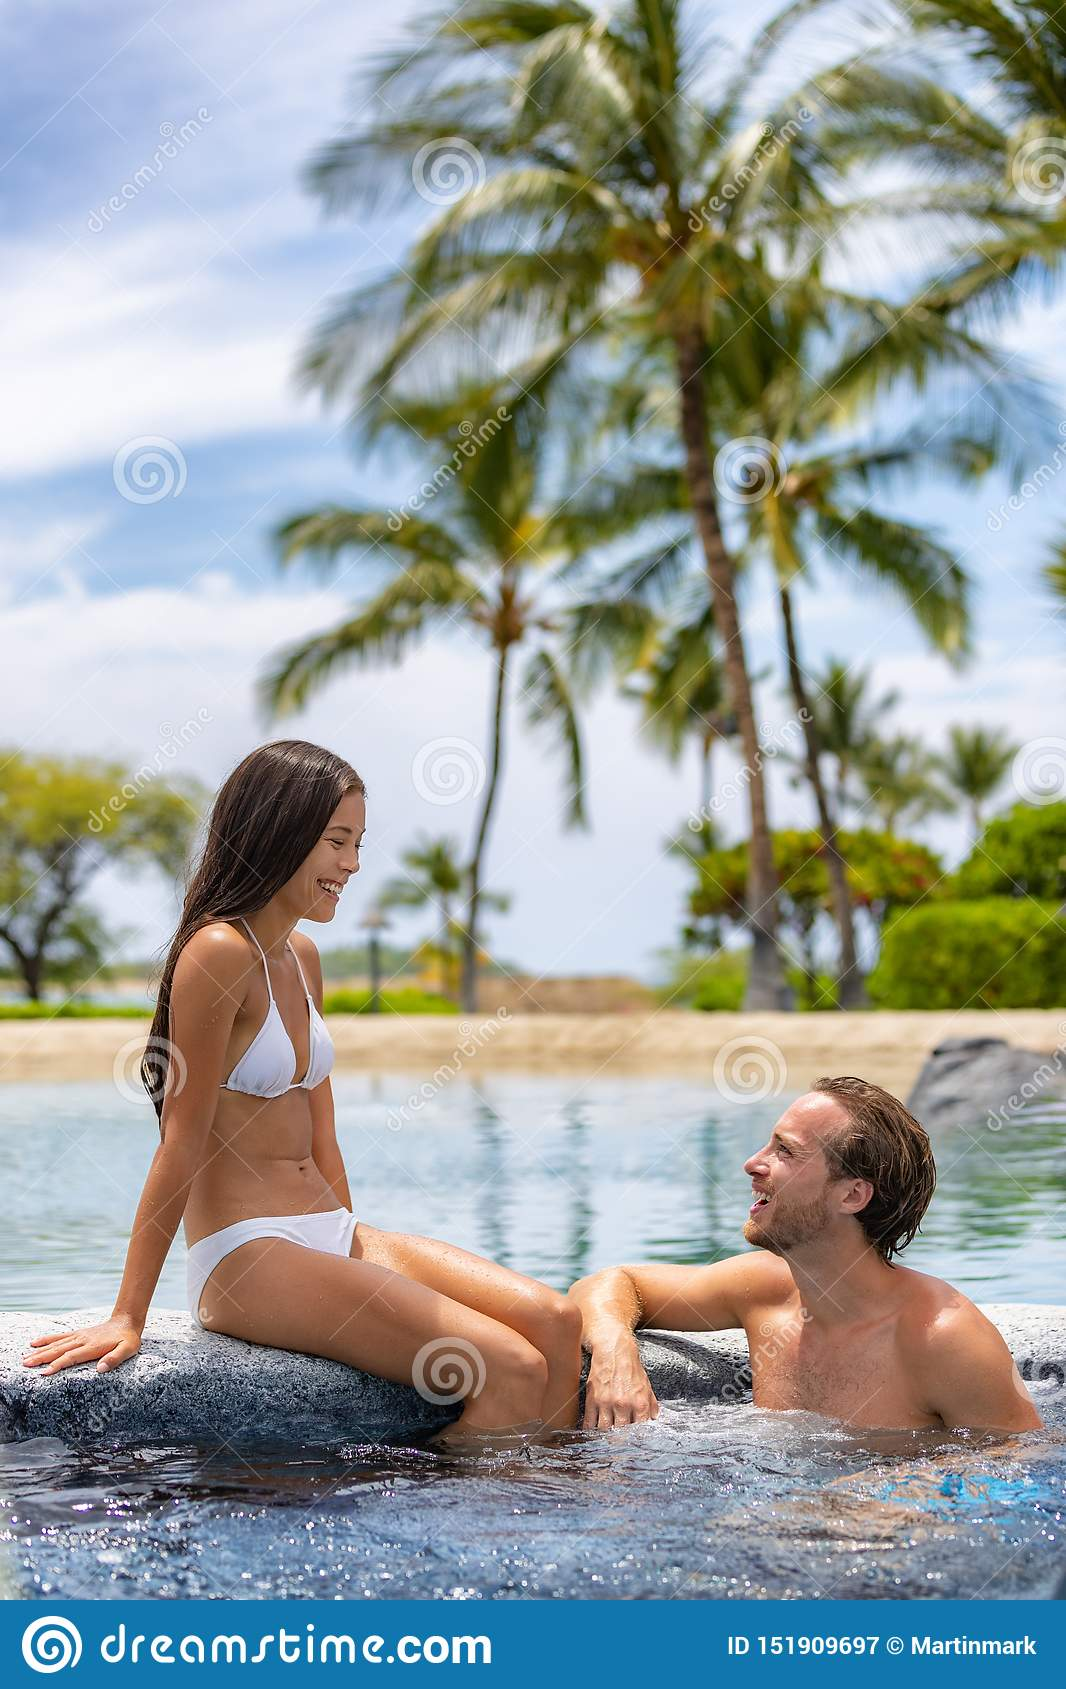 Spa resort couple relaxing enjoying jacuzzi hot tub swimming pool outdoors on summer vacation travel holidays honeymoon getaway.